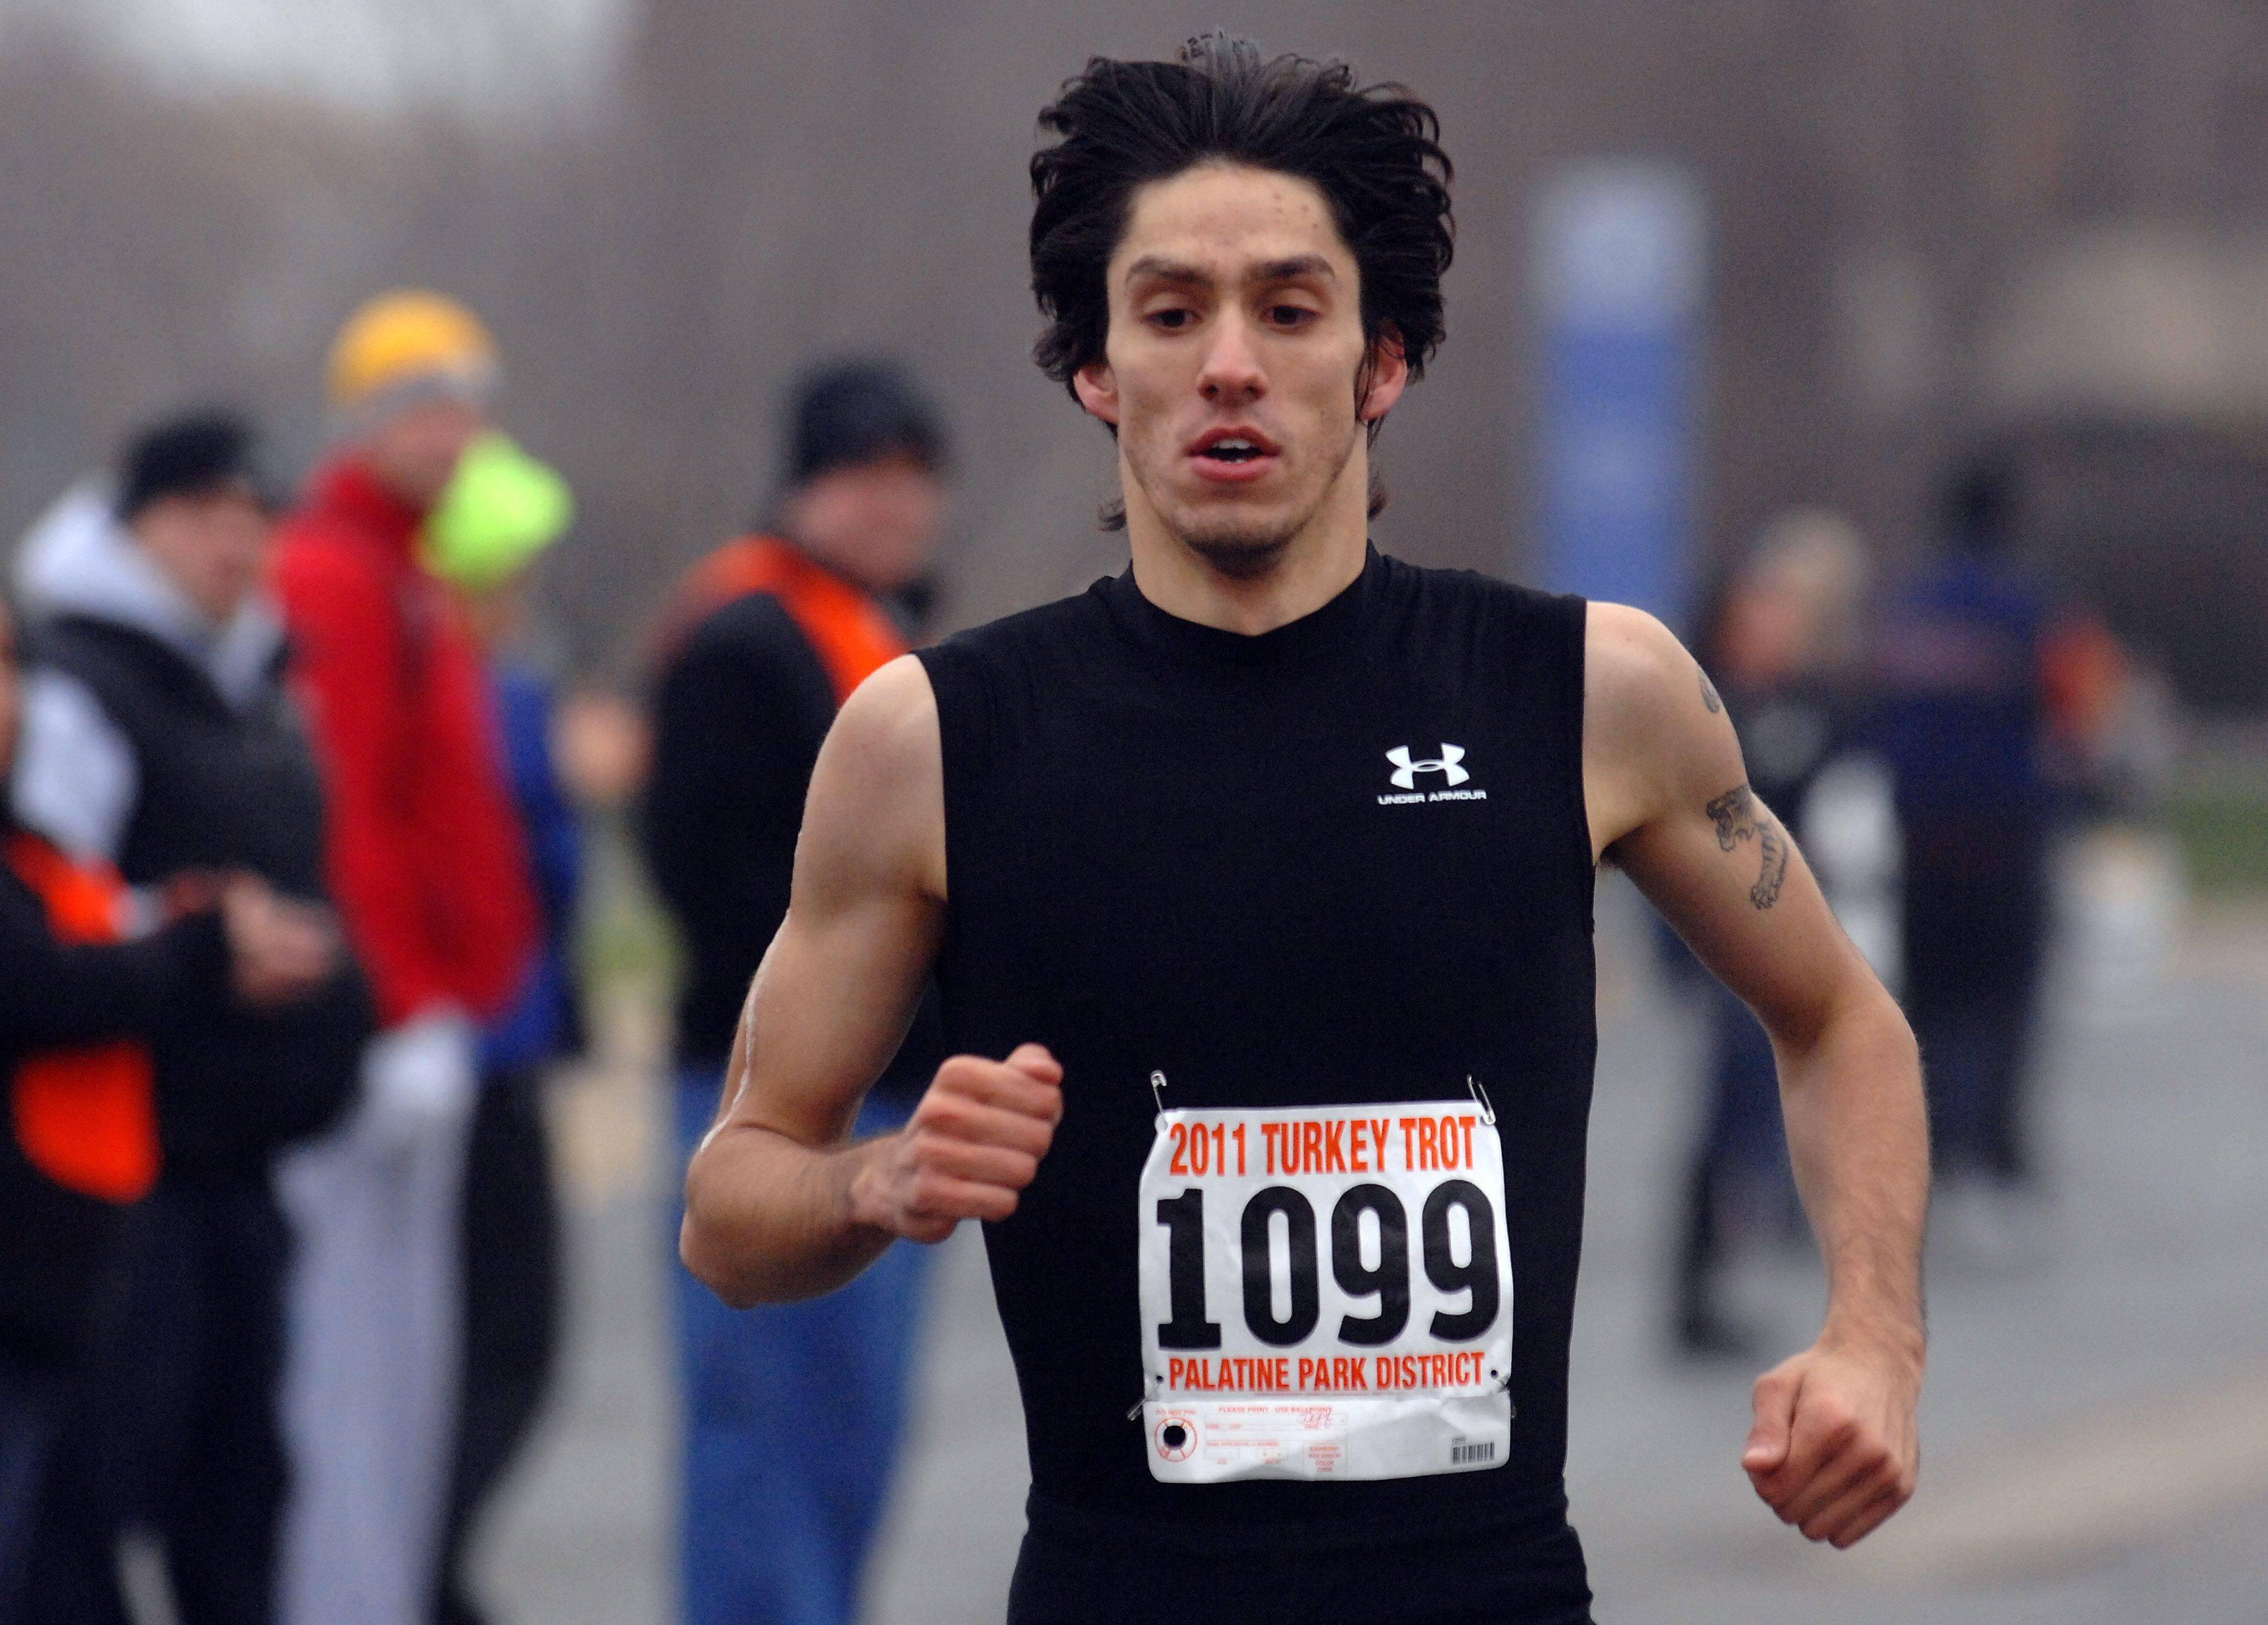 Jeff Thode of Schaumburg entered and won both the two-mile and five-mile Palatine Turkey Trot races on Thursday morning.